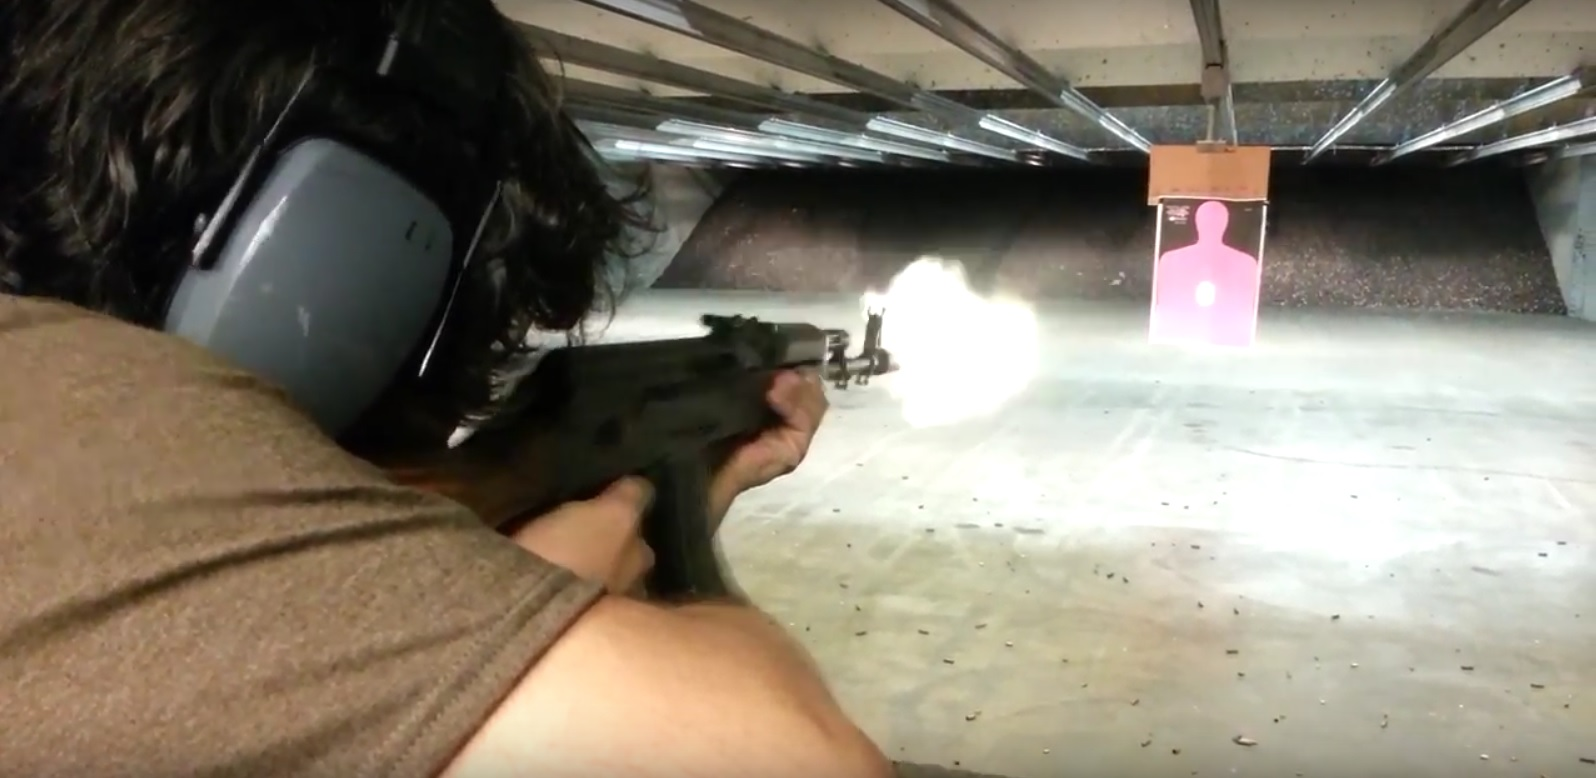 ak-47 shot at indoor shooting range